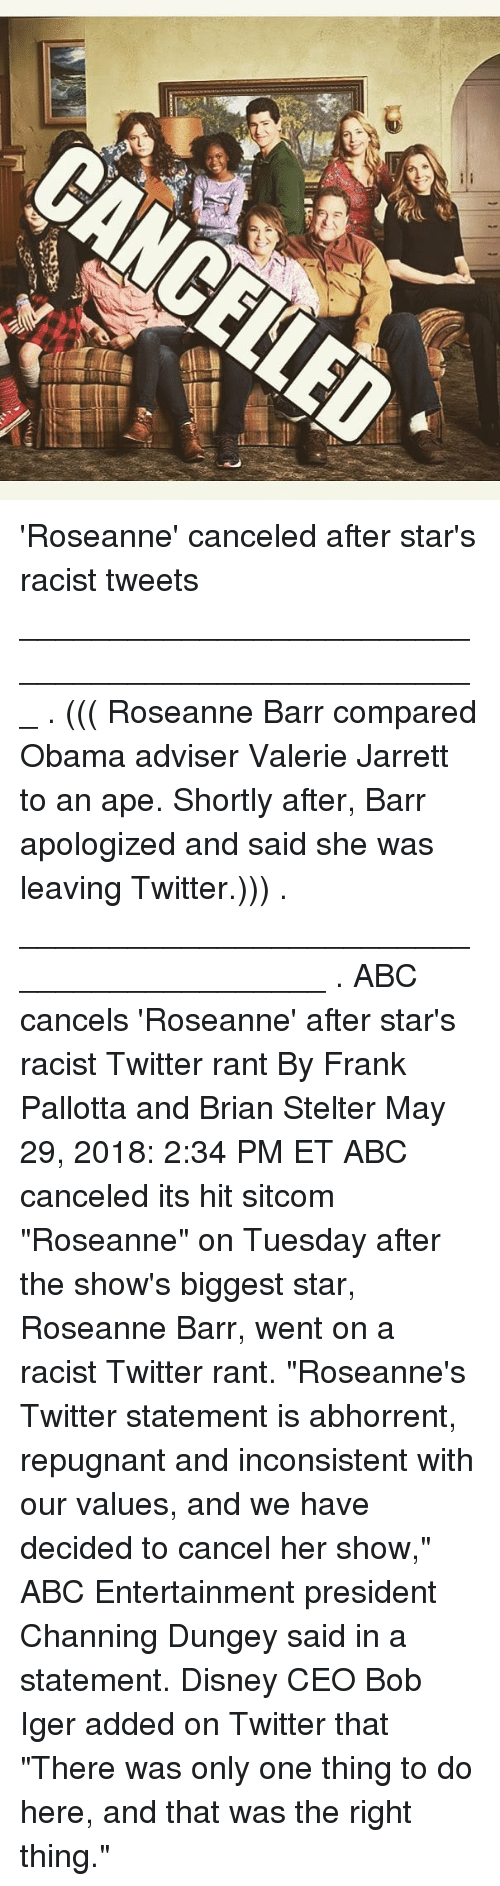 """channing: 'Roseanne' canceled after star's racist tweets ___________________________________________________ . ((( Roseanne Barr compared Obama adviser Valerie Jarrett to an ape. Shortly after, Barr apologized and said she was leaving Twitter.))) . __________________________________________ . ABC cancels 'Roseanne' after star's racist Twitter rant By Frank Pallotta and Brian Stelter May 29, 2018: 2:34 PM ET ABC canceled its hit sitcom """"Roseanne"""" on Tuesday after the show's biggest star, Roseanne Barr, went on a racist Twitter rant. """"Roseanne's Twitter statement is abhorrent, repugnant and inconsistent with our values, and we have decided to cancel her show,"""" ABC Entertainment president Channing Dungey said in a statement. Disney CEO Bob Iger added on Twitter that """"There was only one thing to do here, and that was the right thing."""""""